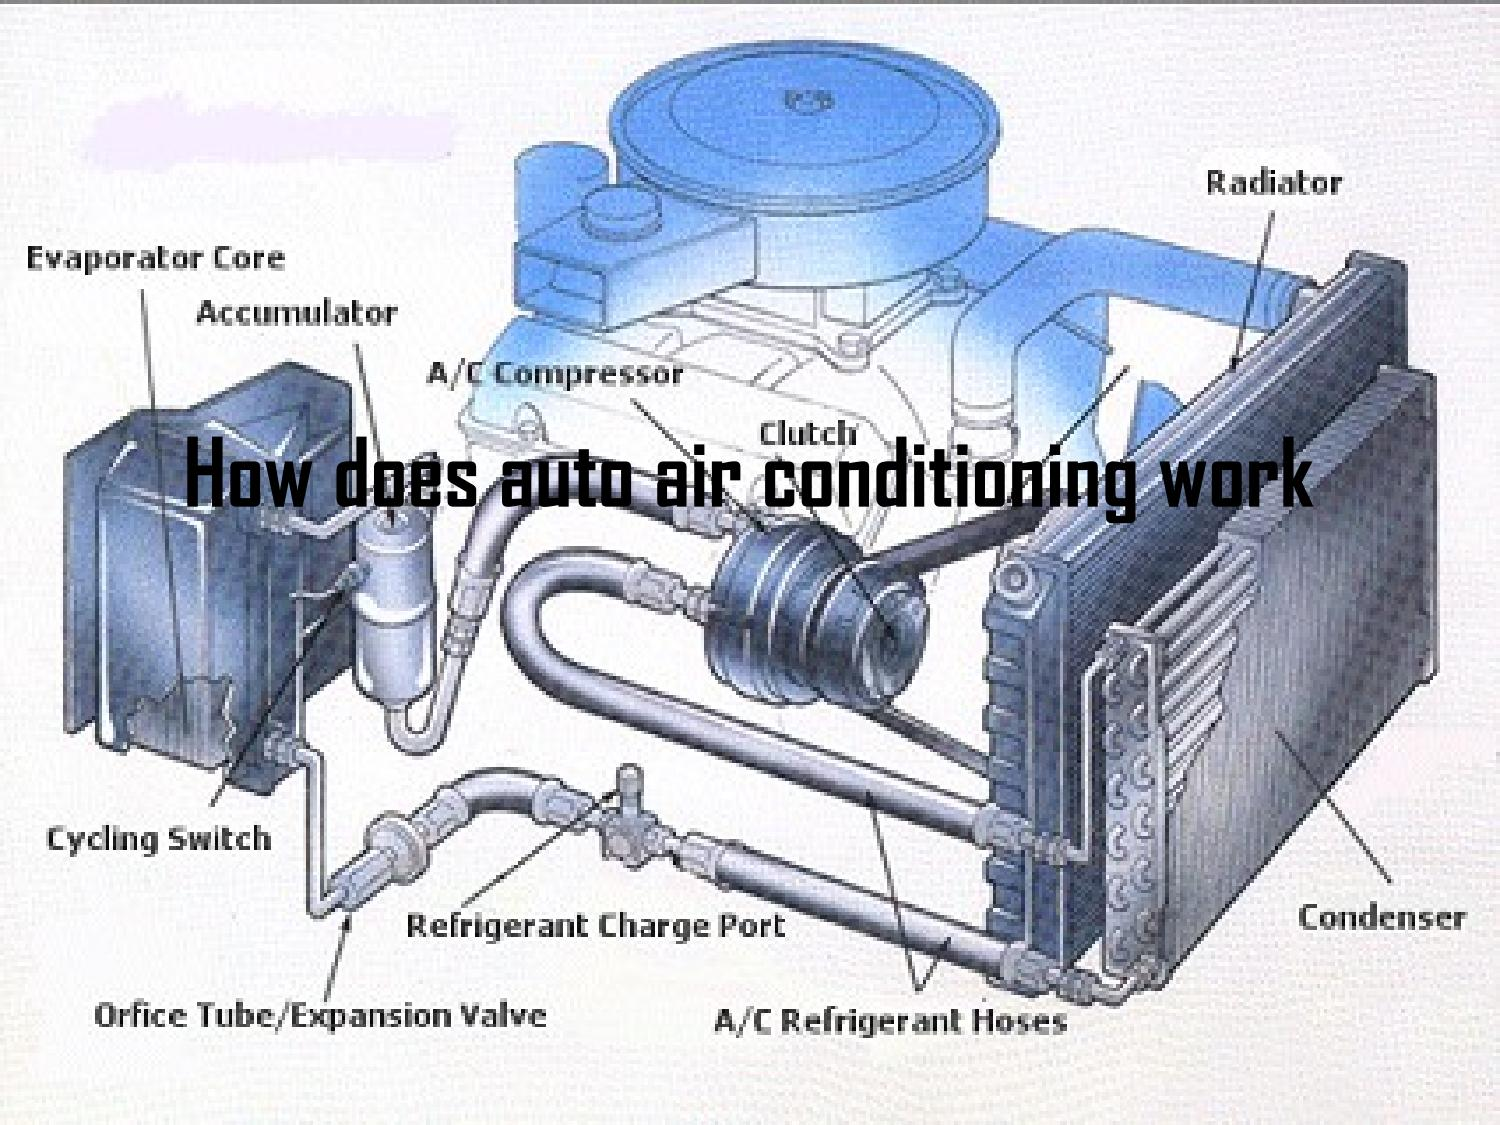 Auto air conditioning ppt by AfterMarketAustralia - issuu